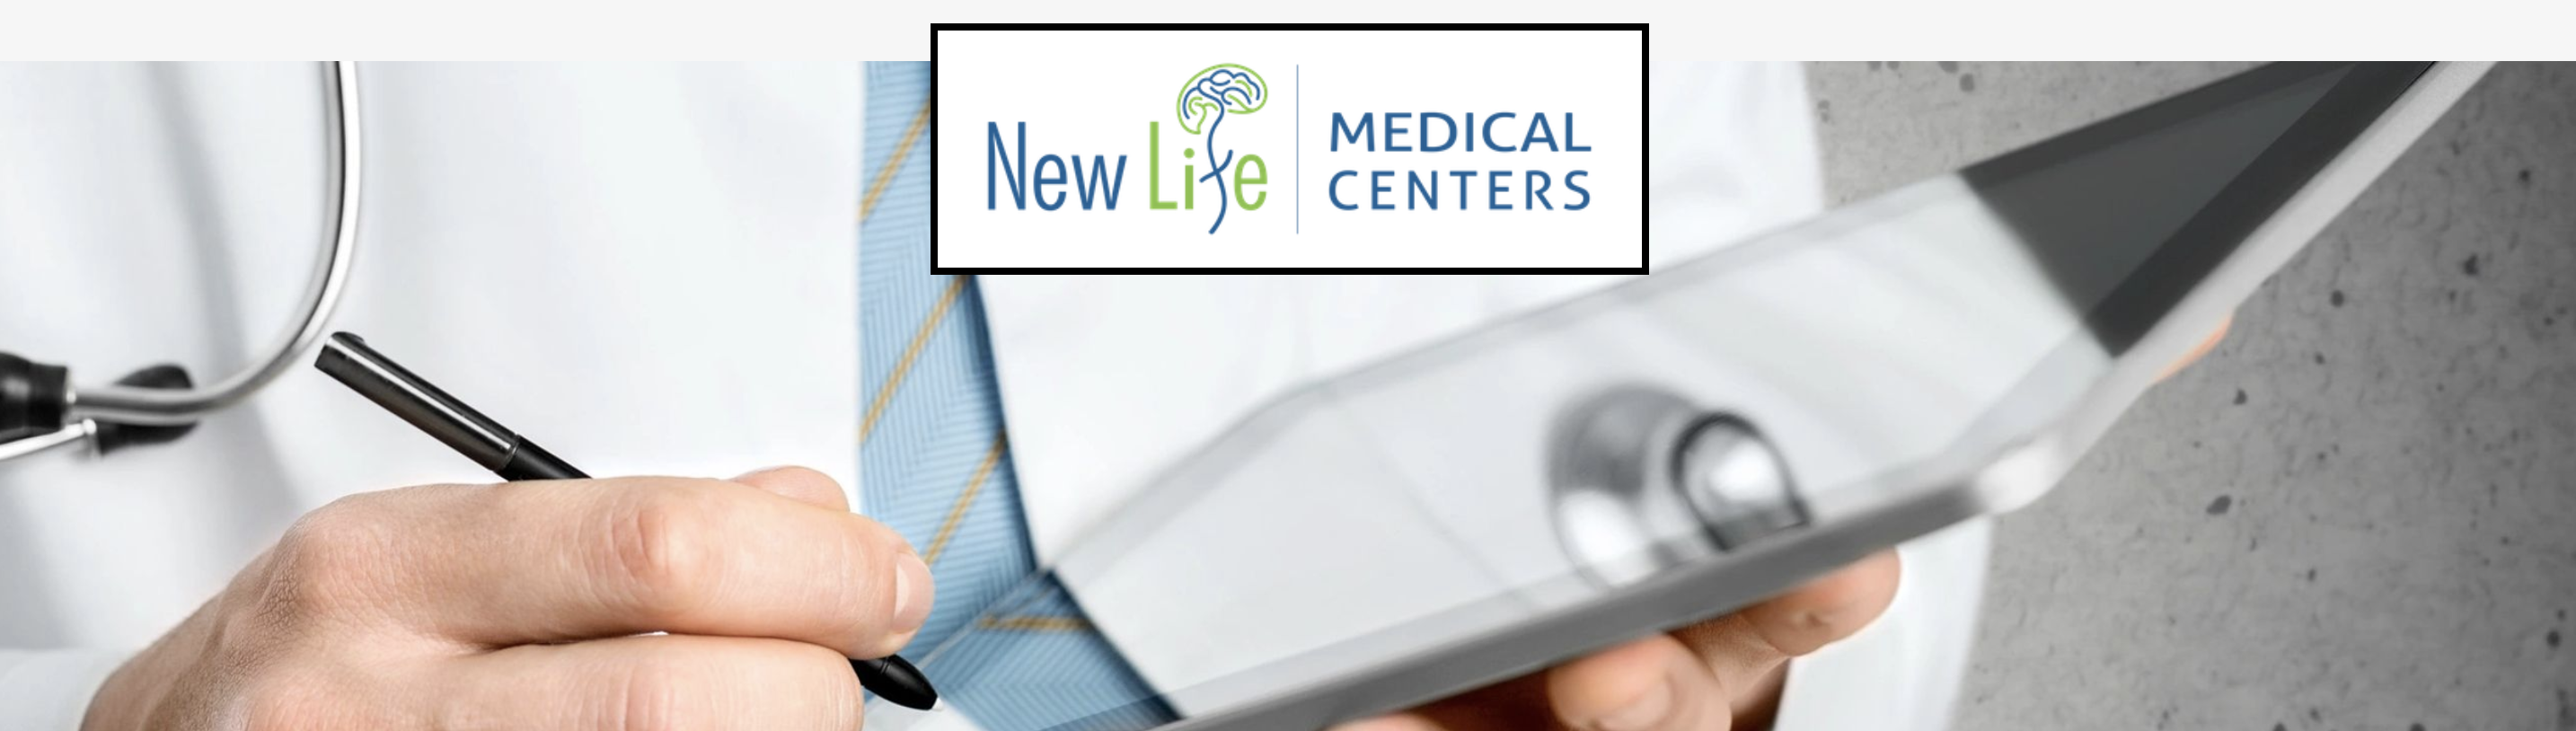 New Life Medical Centers Greenville image 1